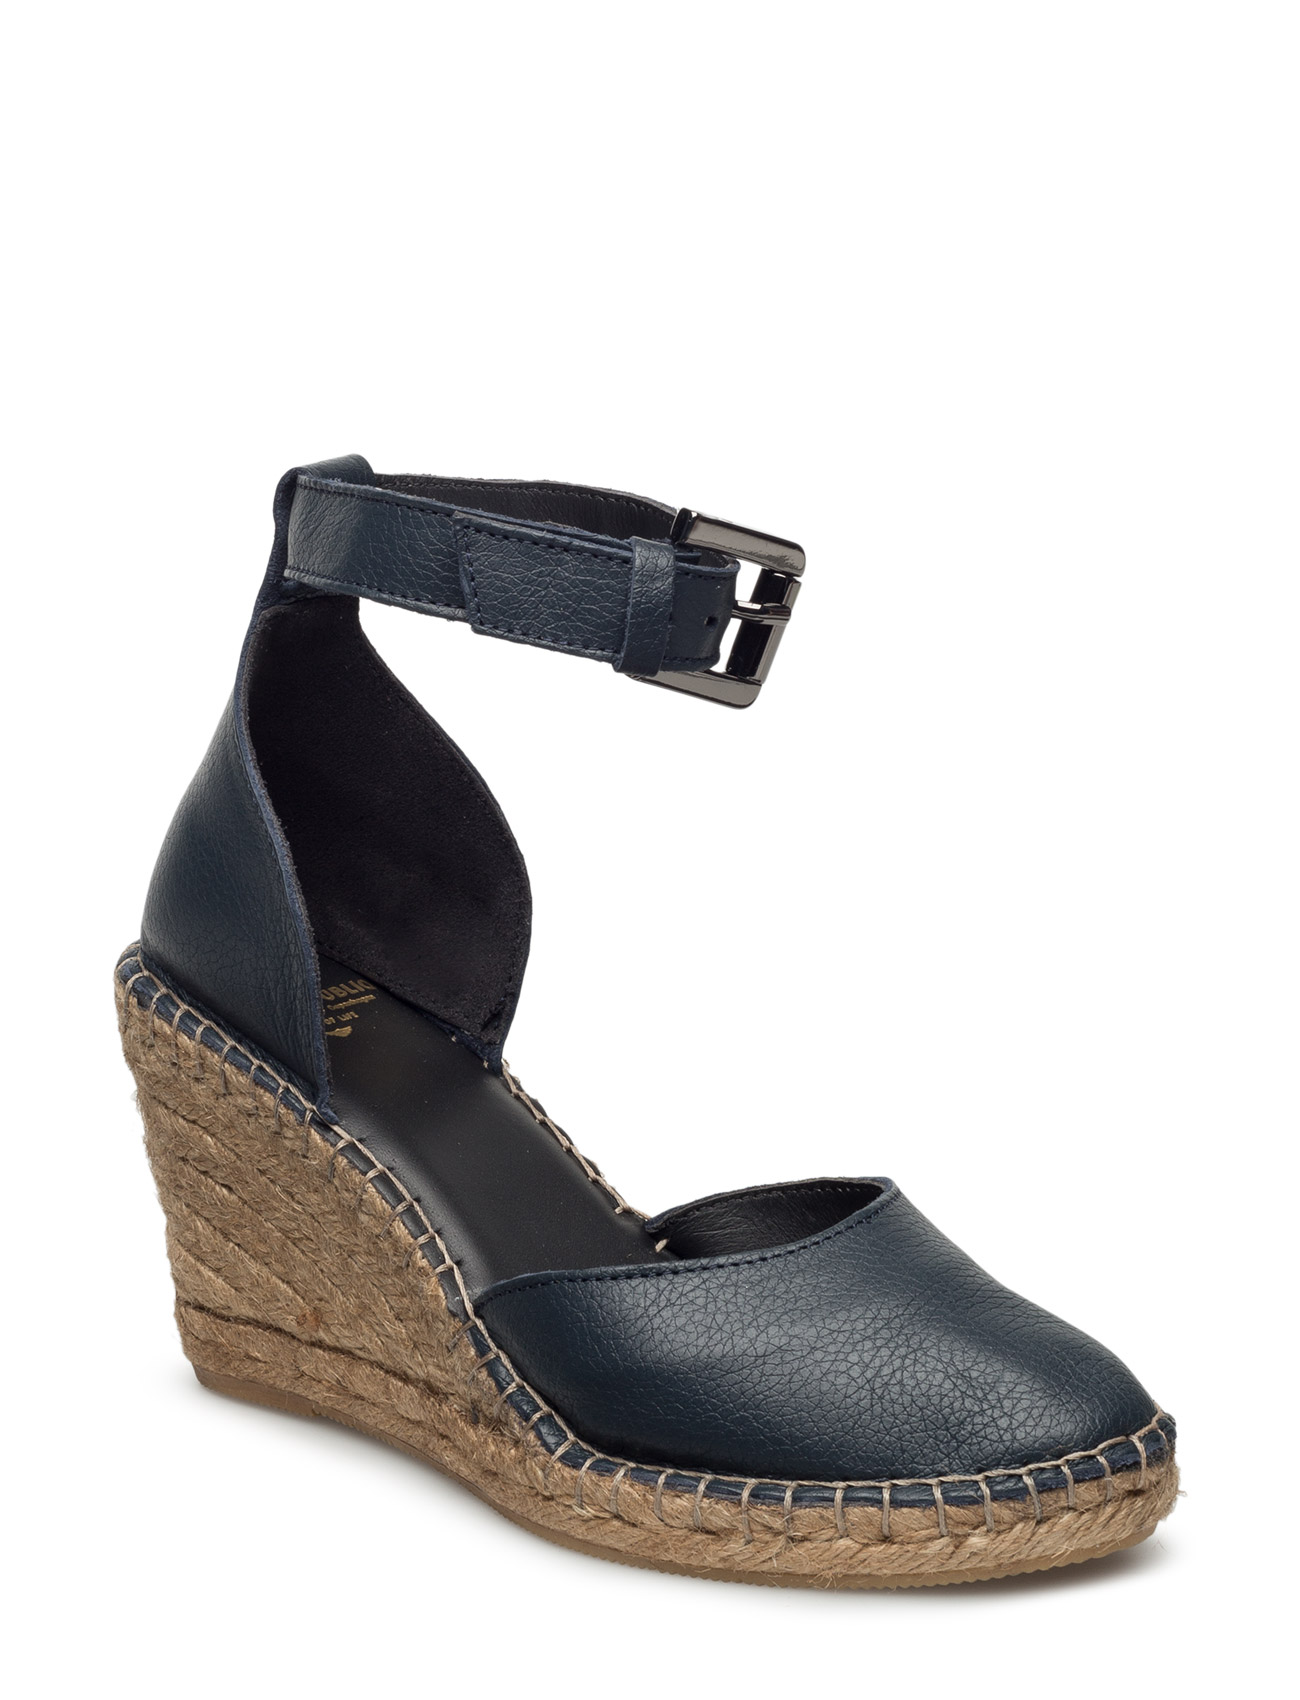 Wayfarer High Wedge Royal RepubliQ Espadrillos til Damer i Navy blå